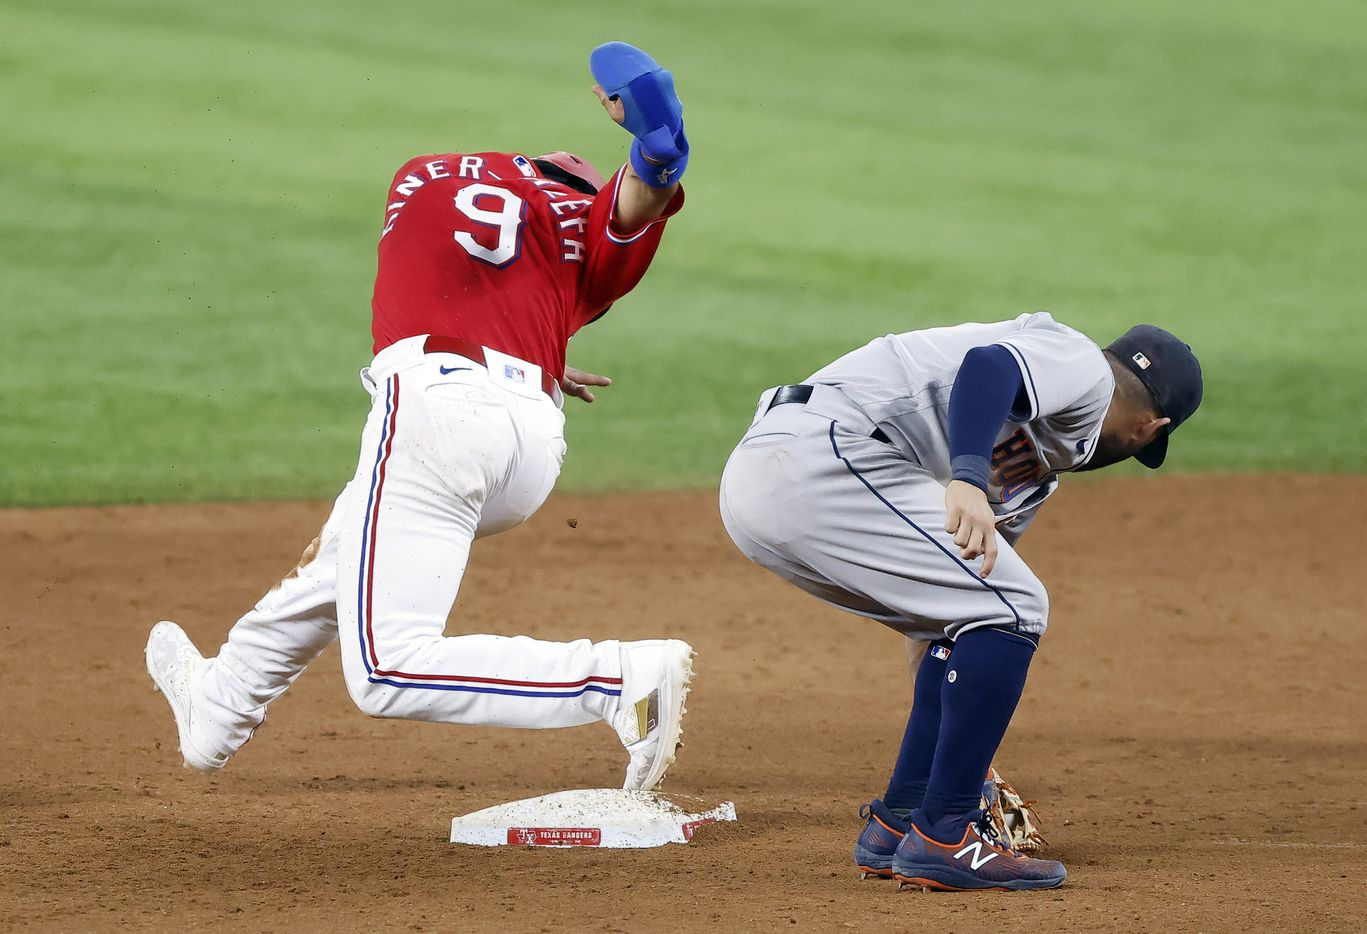 Texas Rangers shortstop Isiah Kiner-Falefa (9) slides safely past Houston Astros second baseman Jose Altuve (27) on a stolen base attempt in the ninth inning at Globe Life Field in Arlington, Texas, Friday, May 21, 2021. The play was reviewed and called safe. (Tom Fox/The Dallas Morning News)